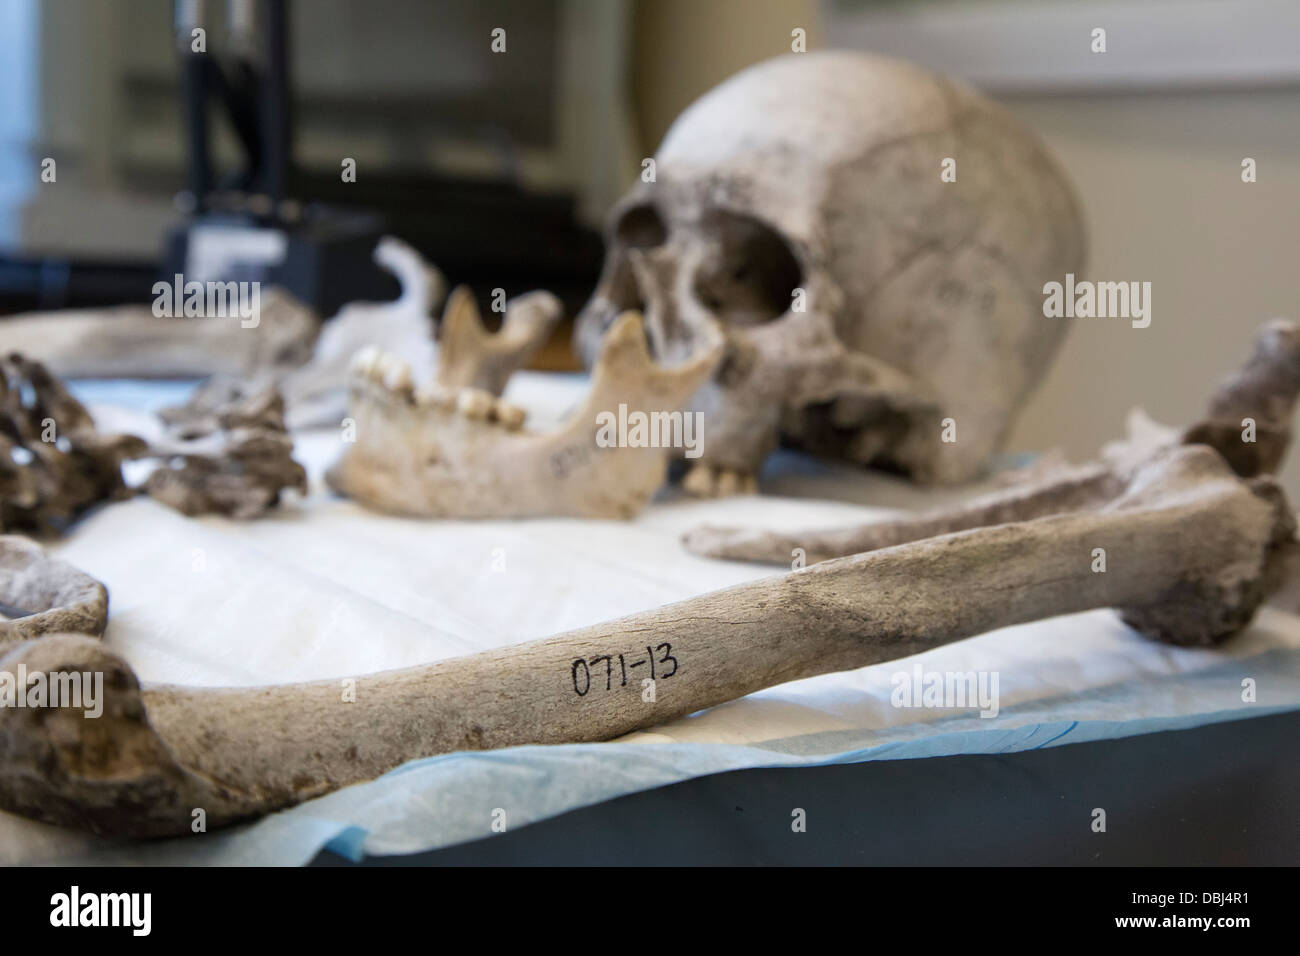 Baylor University Lab Works to Identify Remains of Unknown Migrants who Died Crossing the Border from Mexico - Stock Image